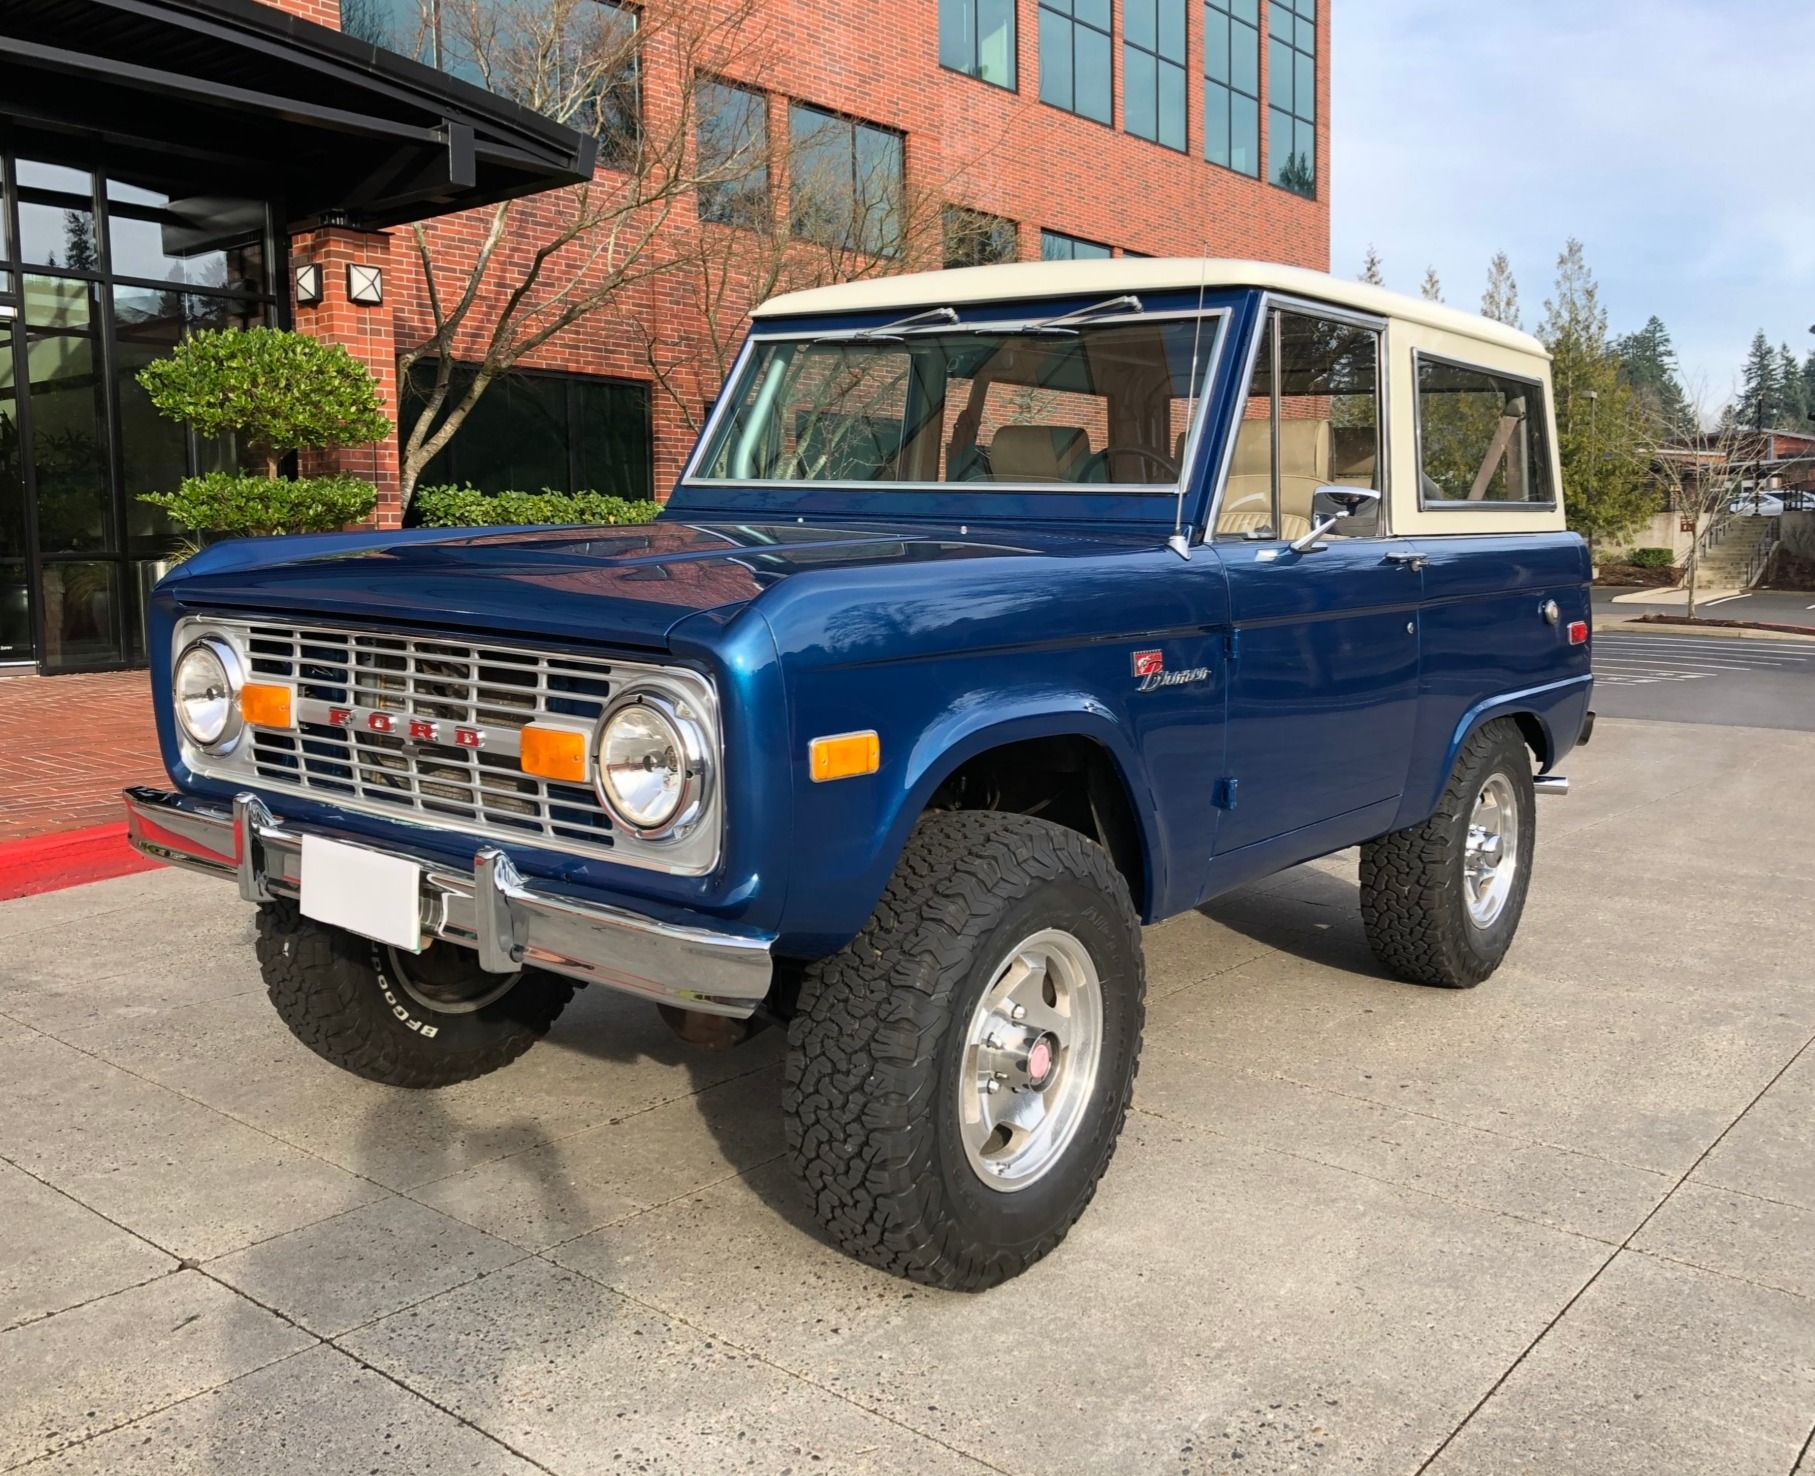 1976 Ford Bronco Sport 5Speed Ford bronco, Bronco